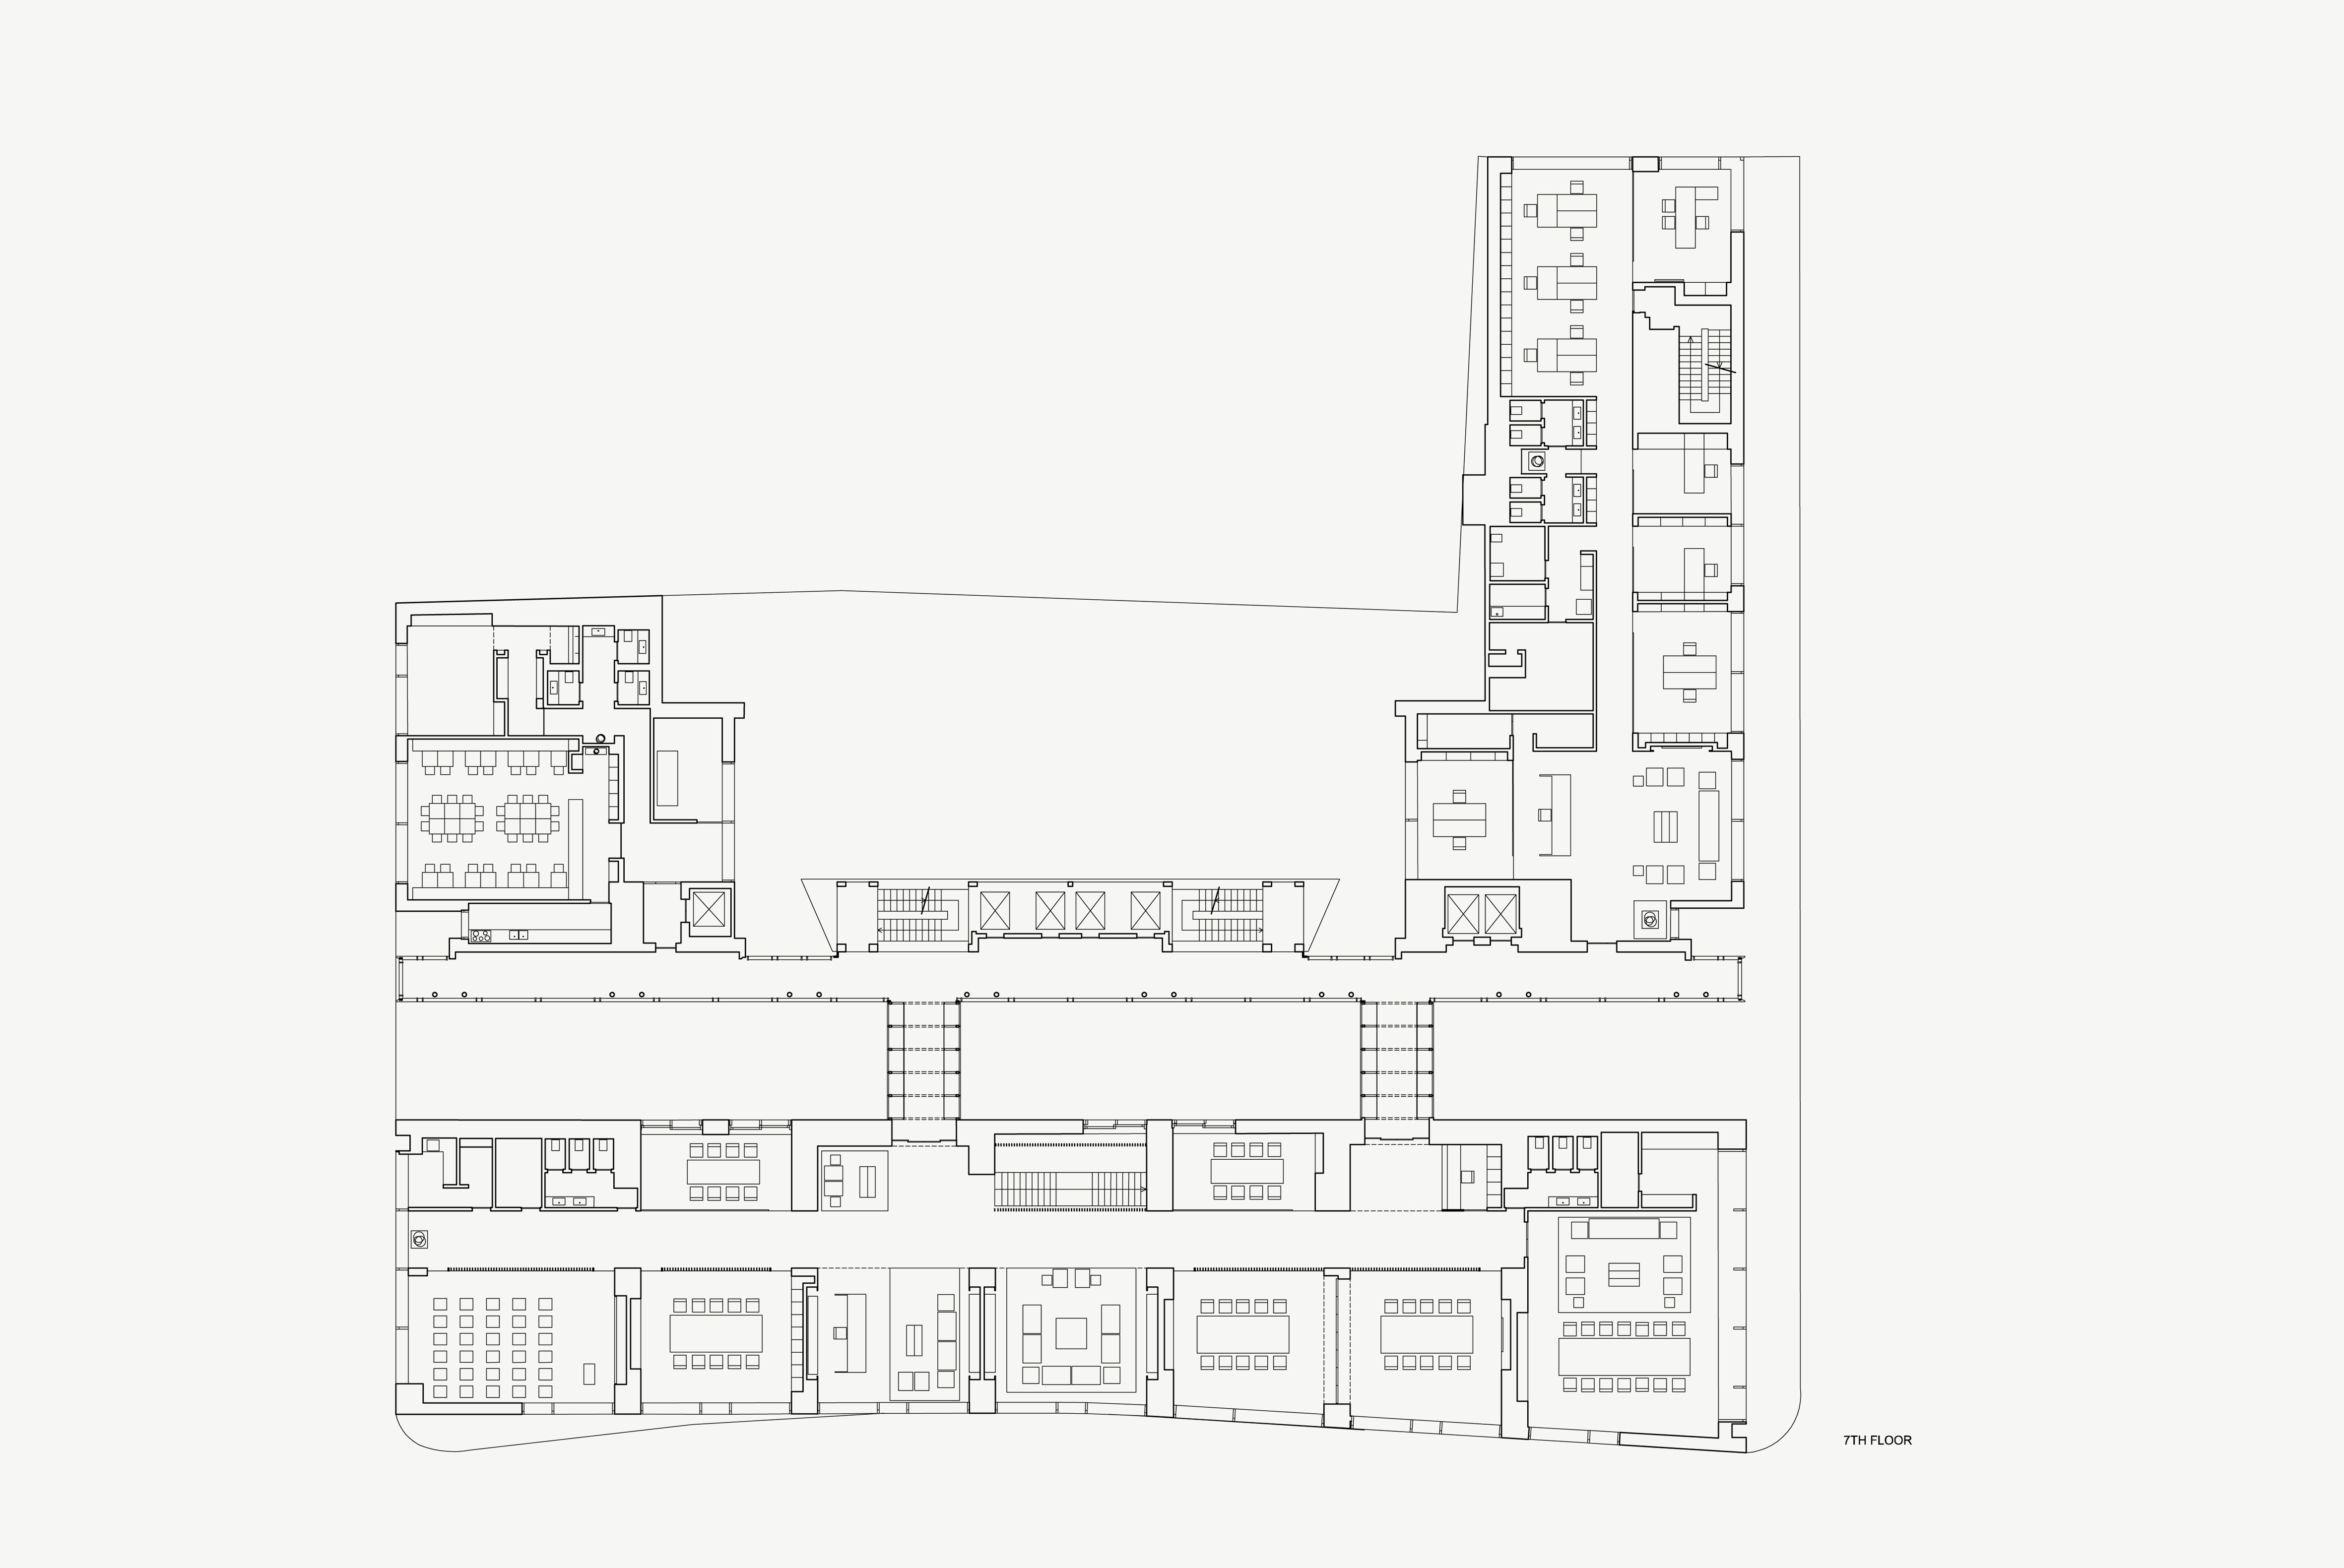 M1 Offices Floorplan 07